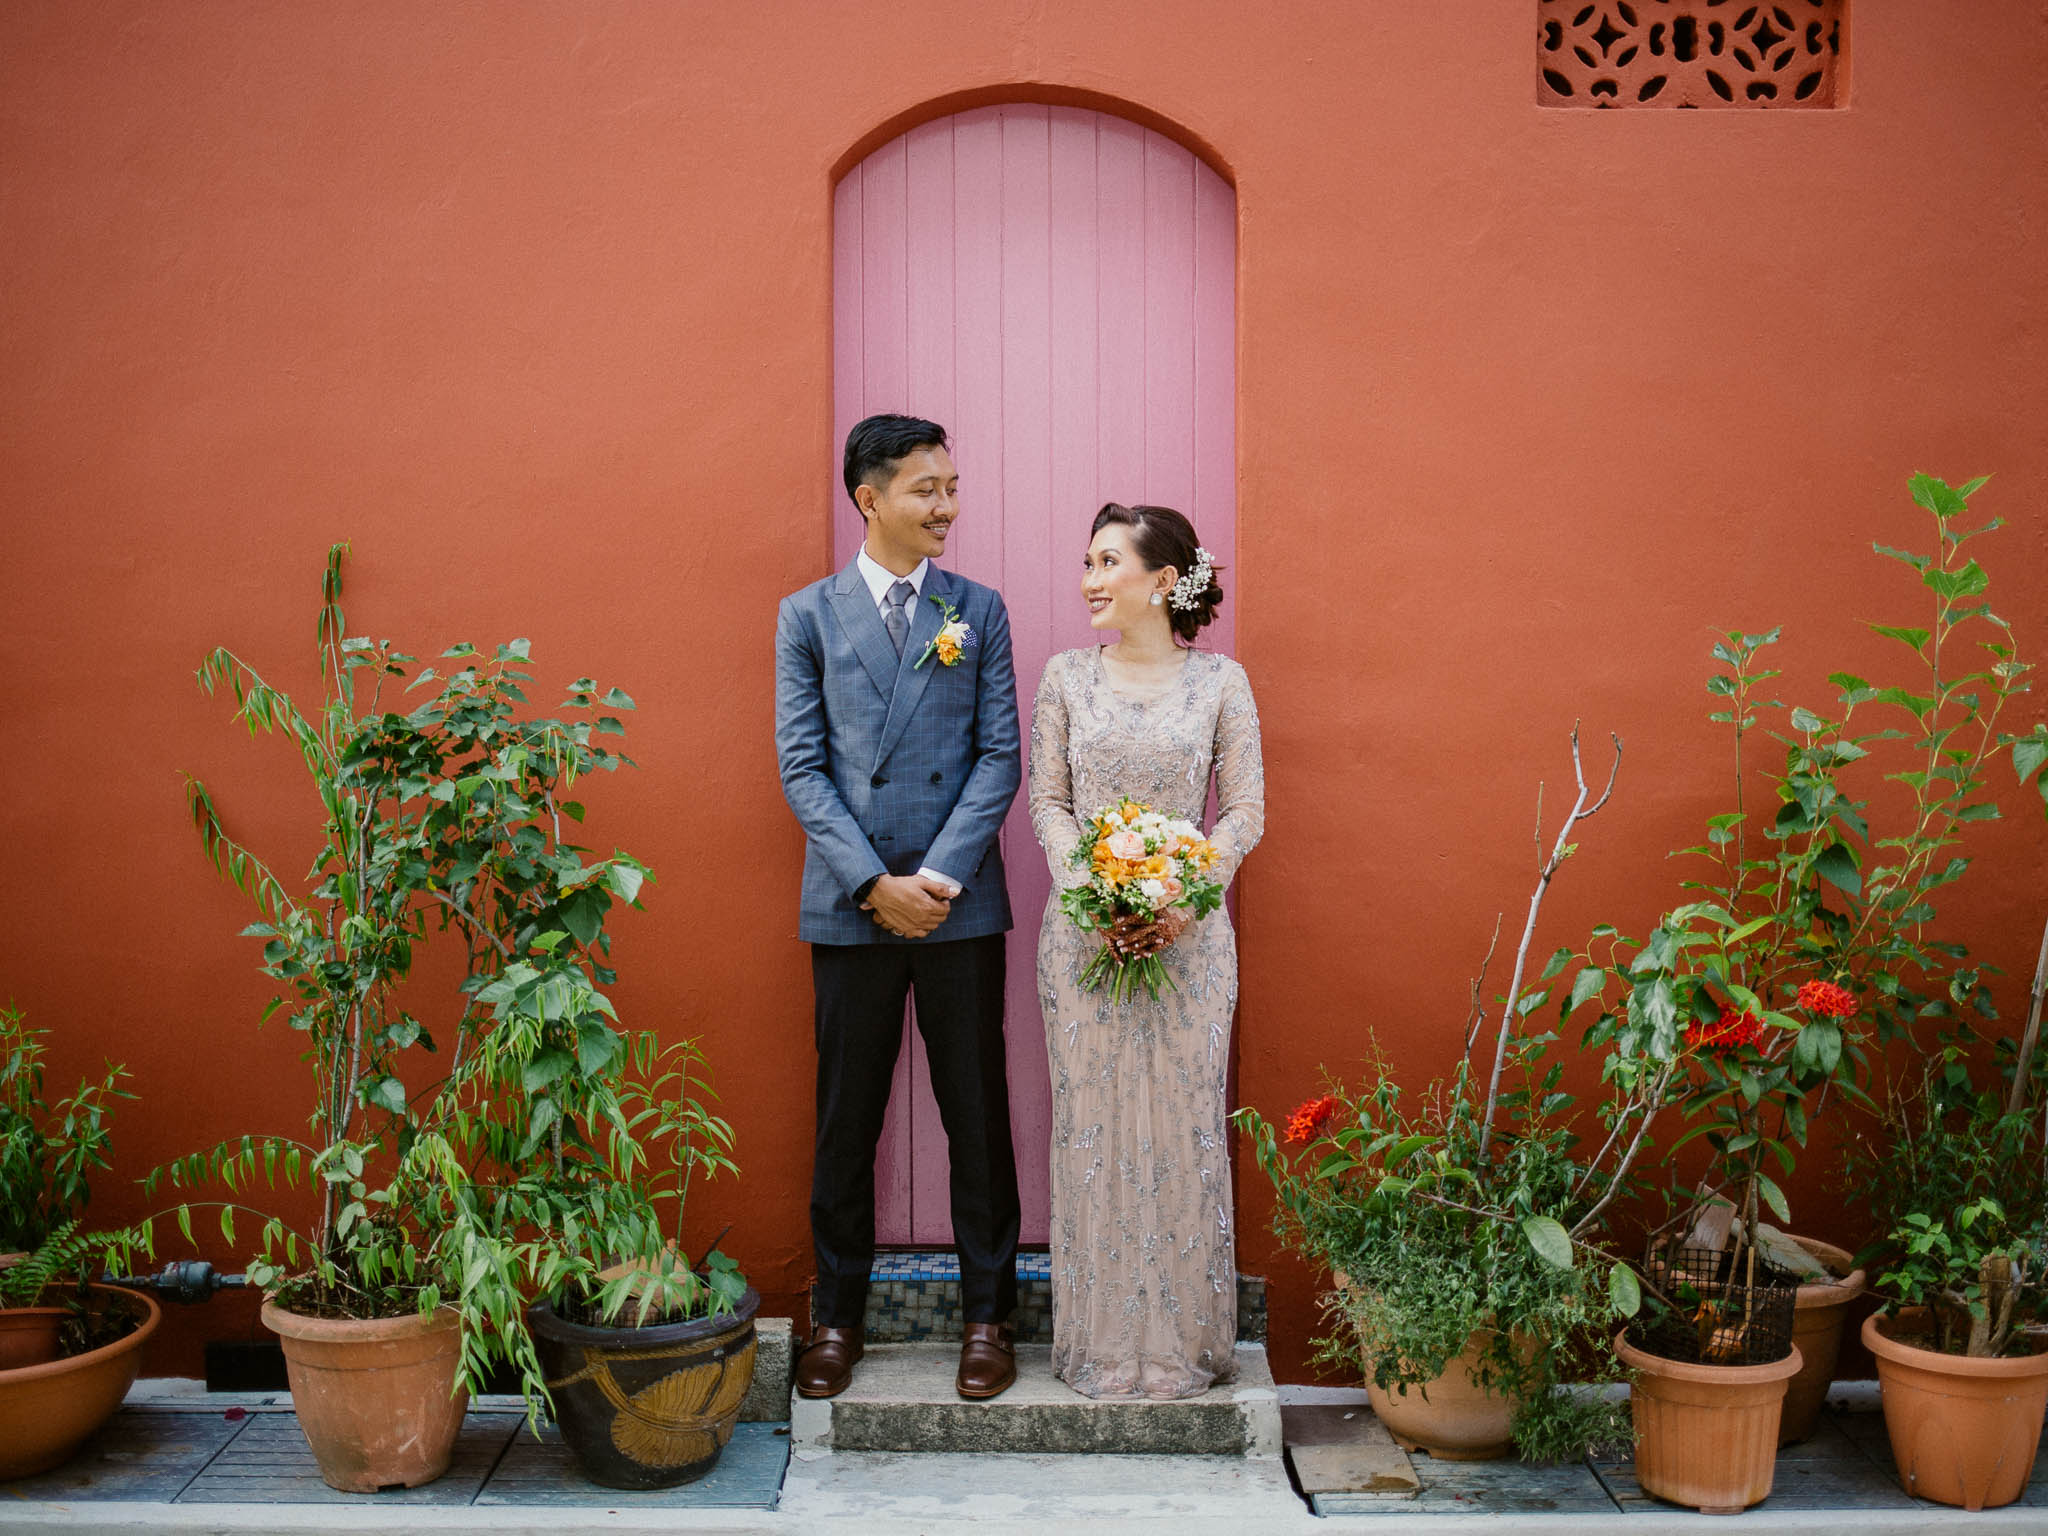 singapore-wedding-photographer-we-made-these-2016-selects-129.jpg